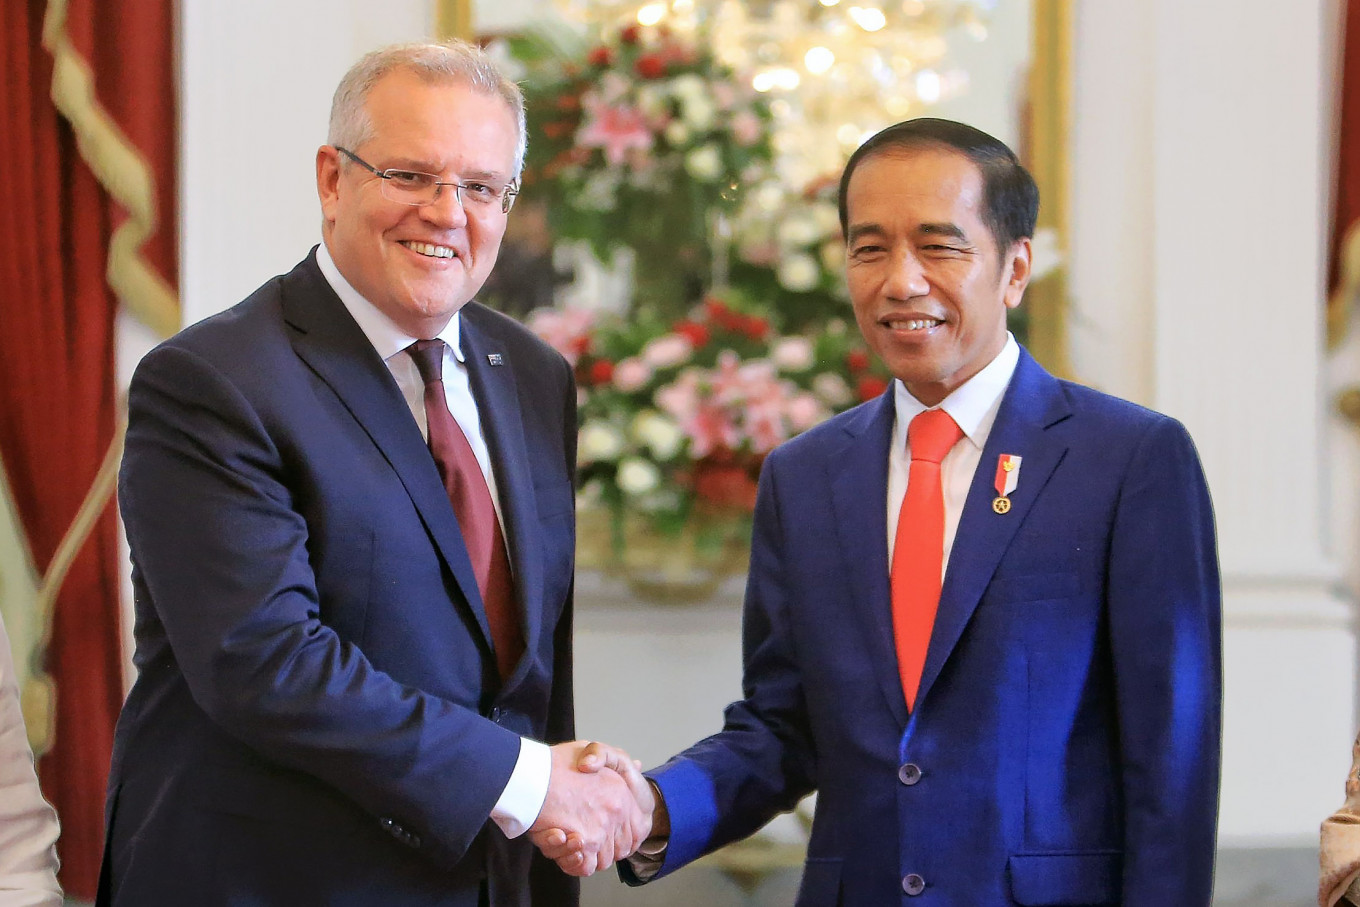 President Jokowi to visit Australia this weekend